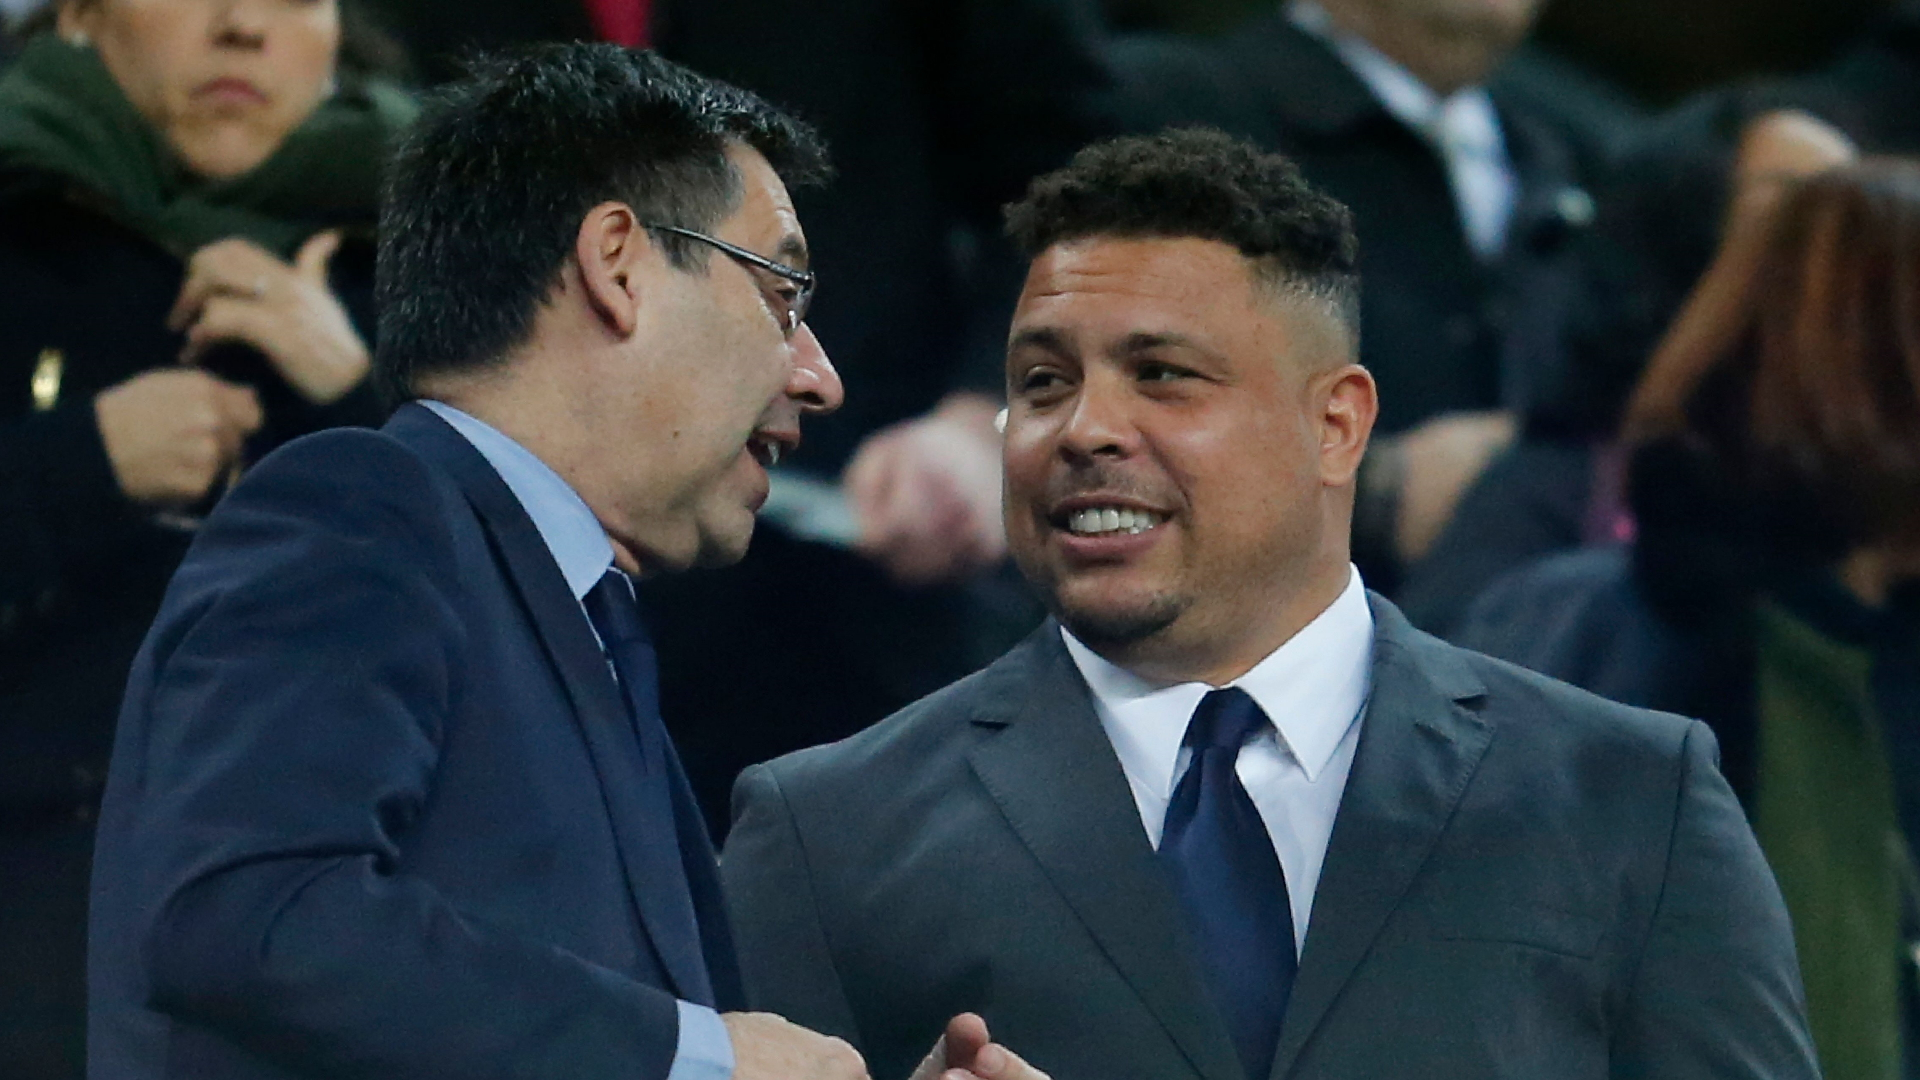 'He reminds me of me' - Ronaldo picks Mbappe as his dream signing for Real Valladolid